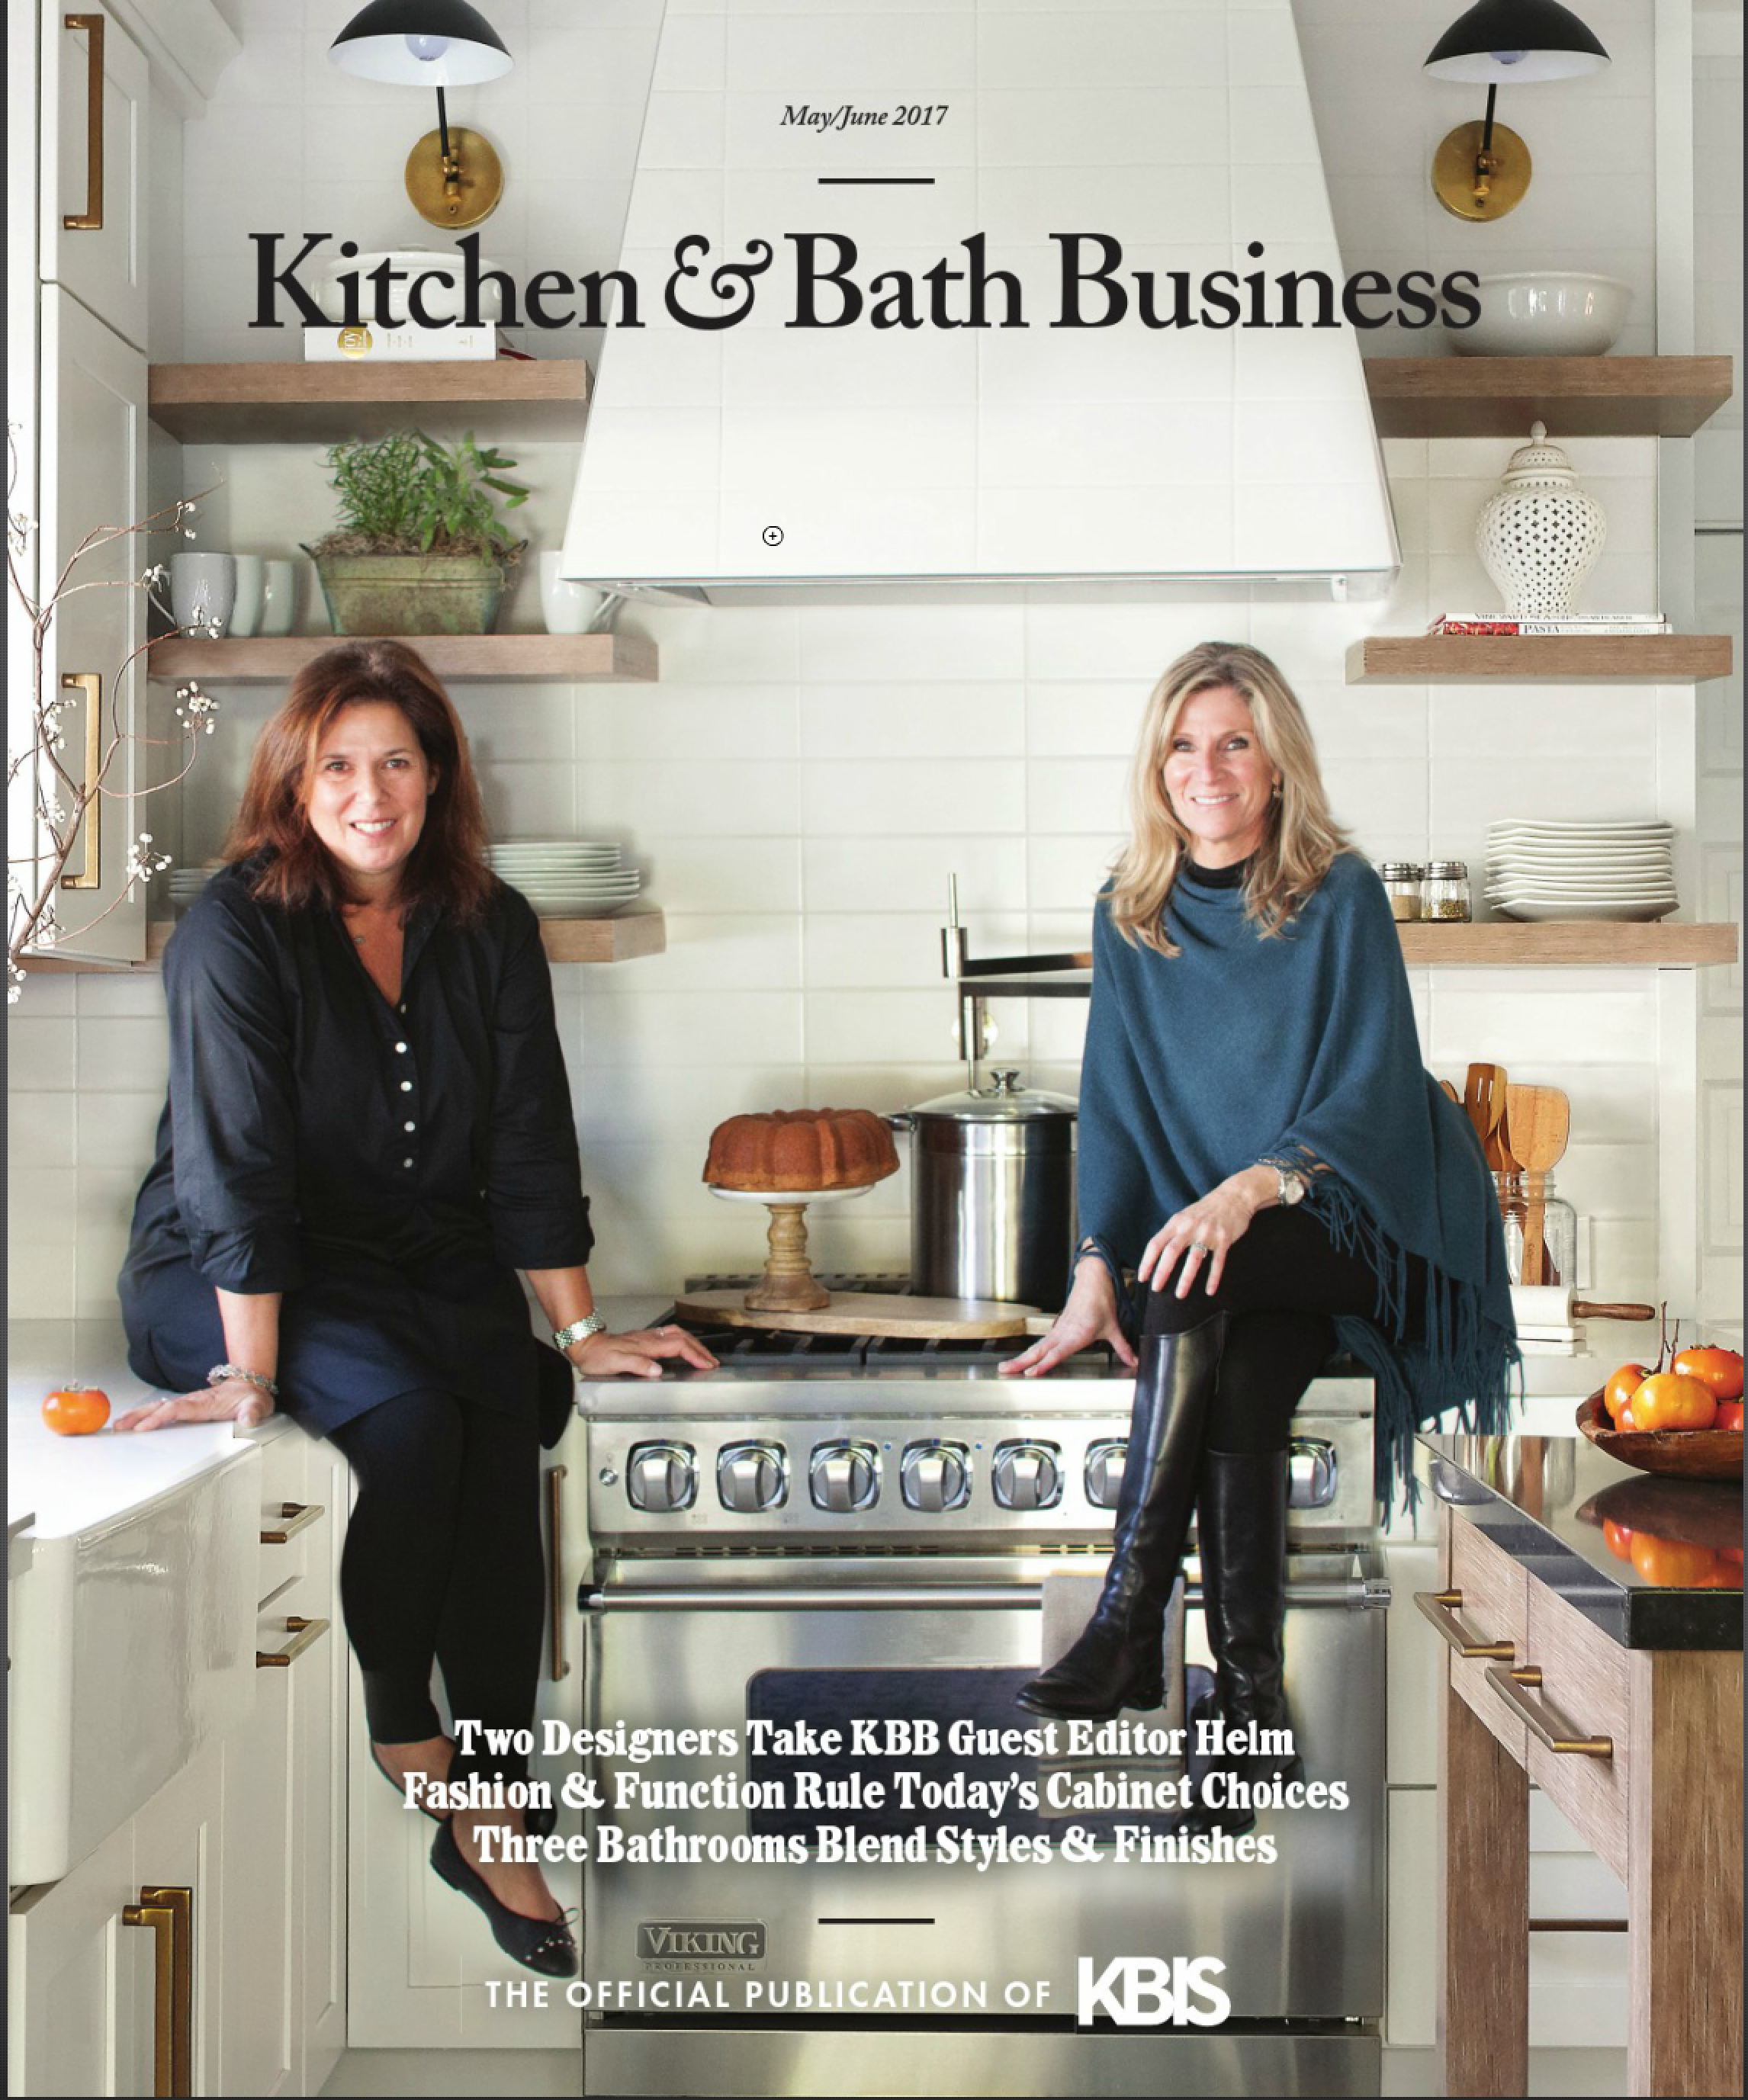 Kitchen & Bath Business Media Kit